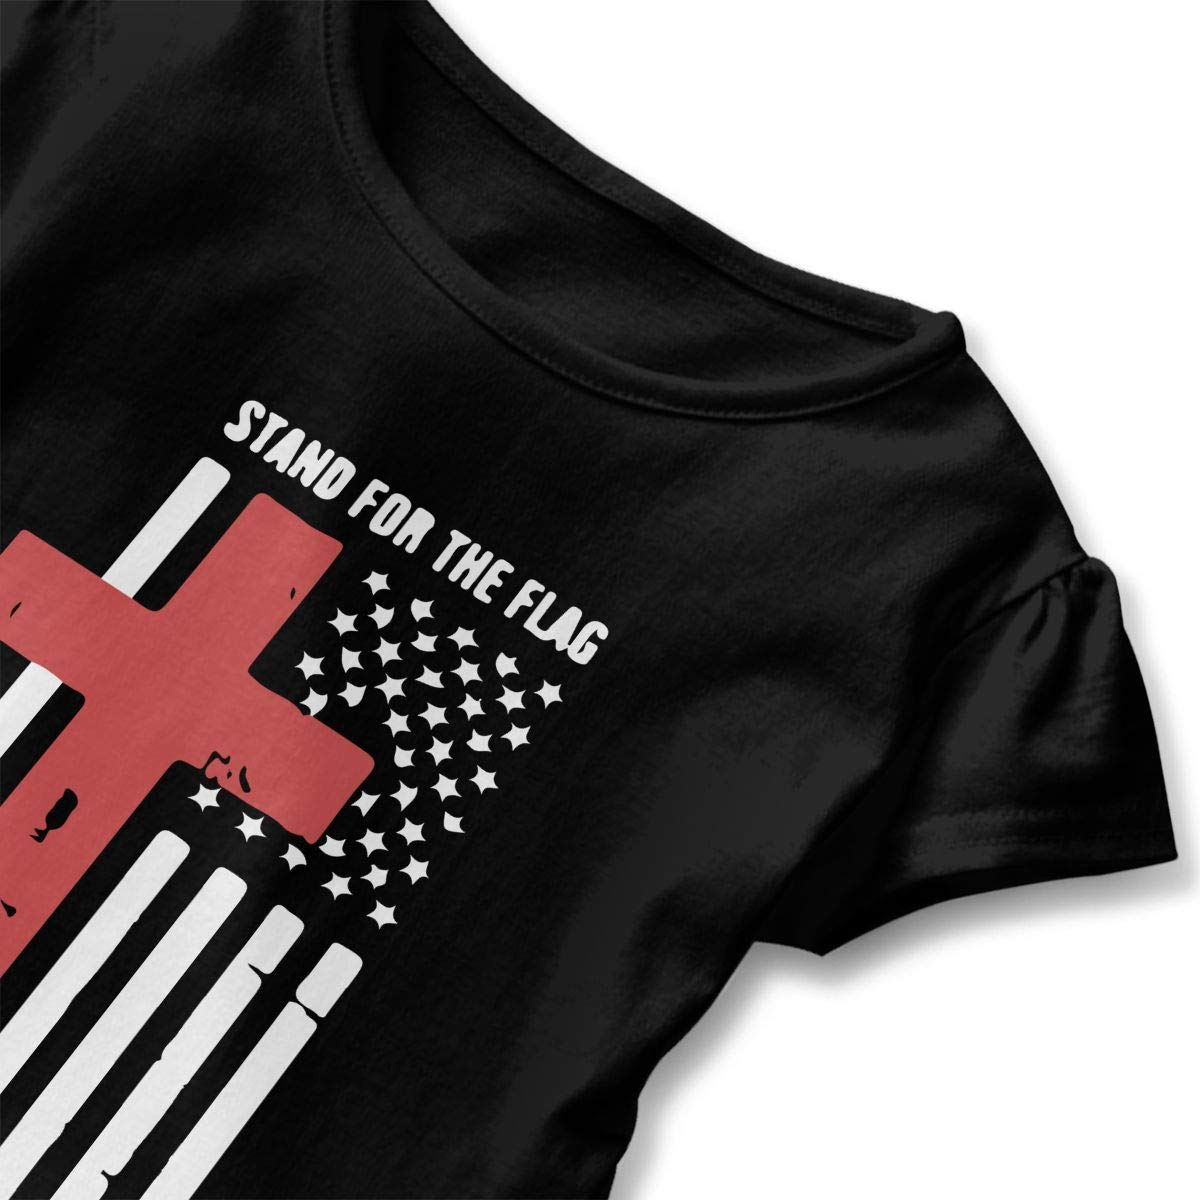 Toddler Baby Girl Stand for The American Flag Kneel for The Cross 100/% Cotton T Shirts Short Sleeve Ruffle Tee Basic Tops